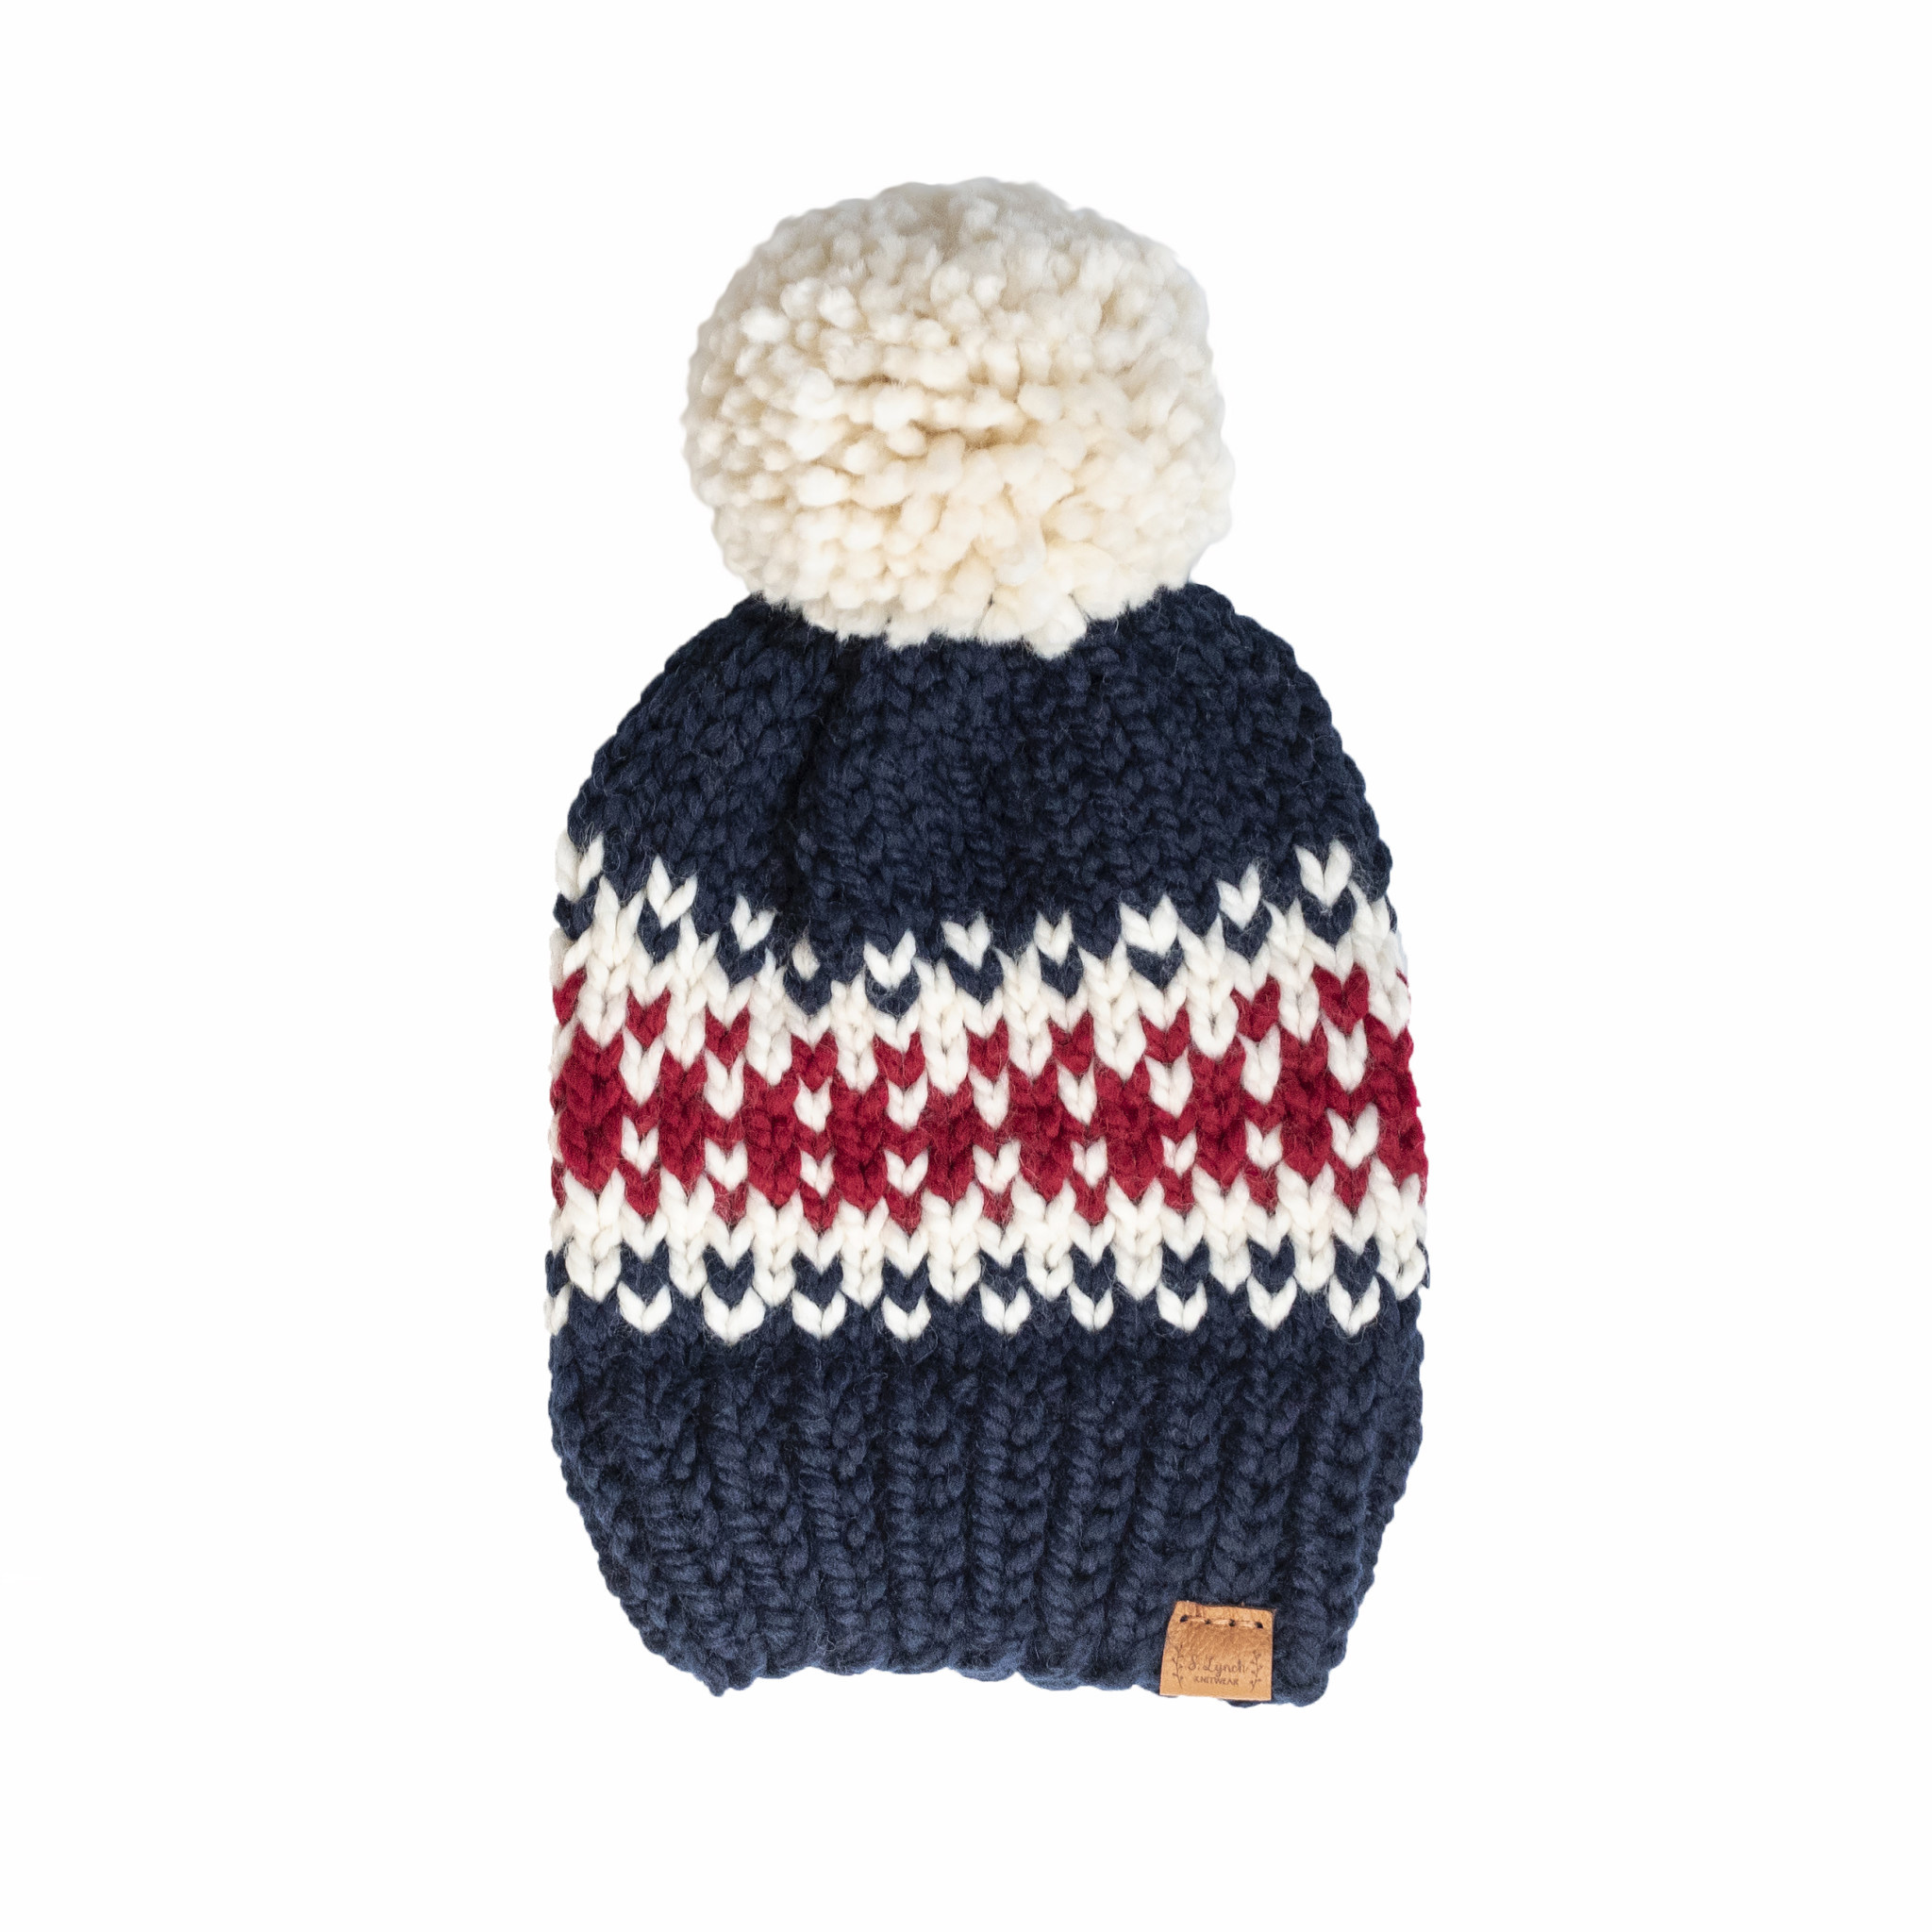 S. Lynch Knitwear Adult Hat - Kennebunk